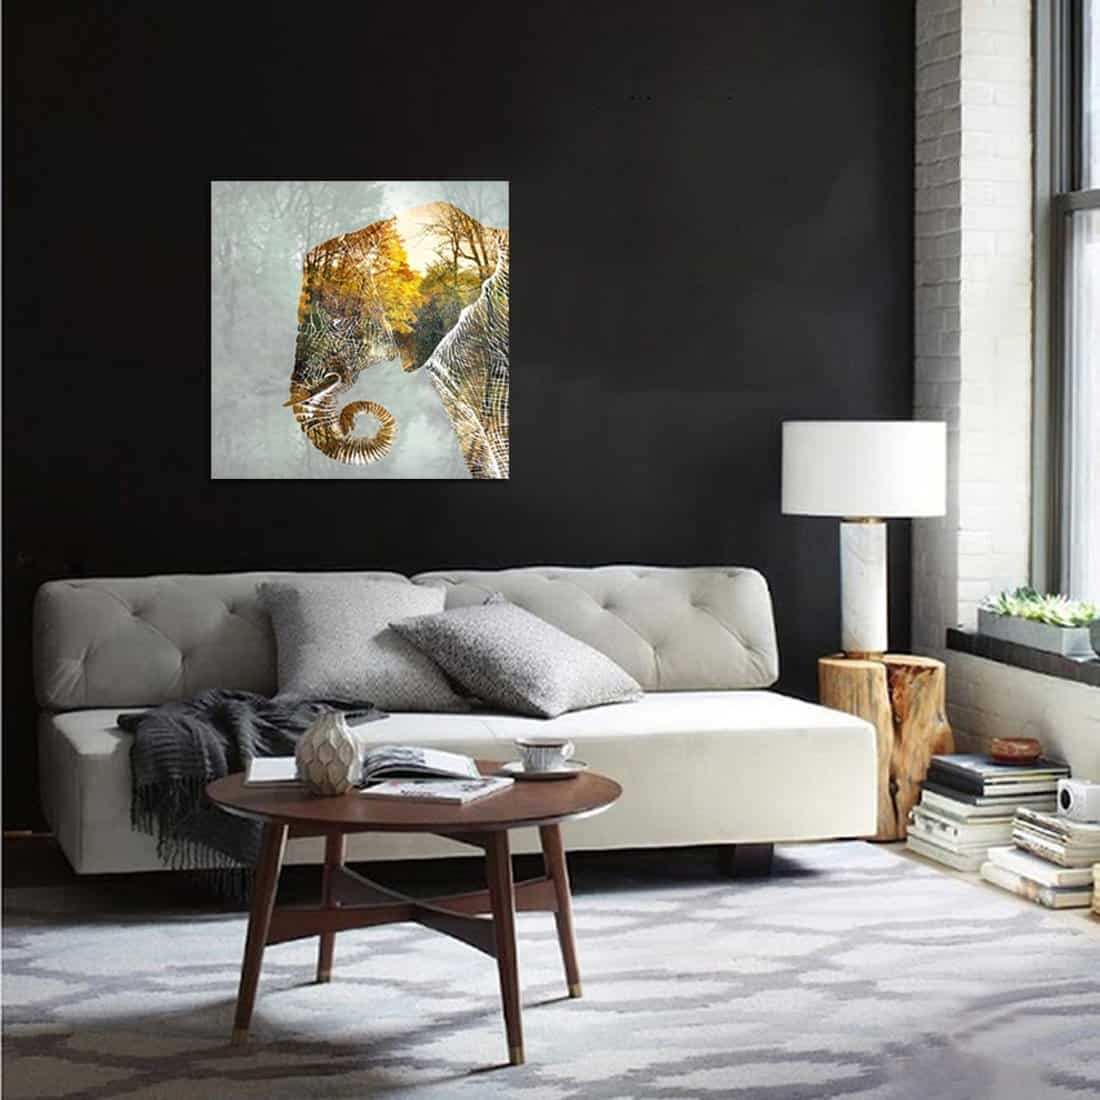 Elephant Painting Wall Art With Framed for Living Room